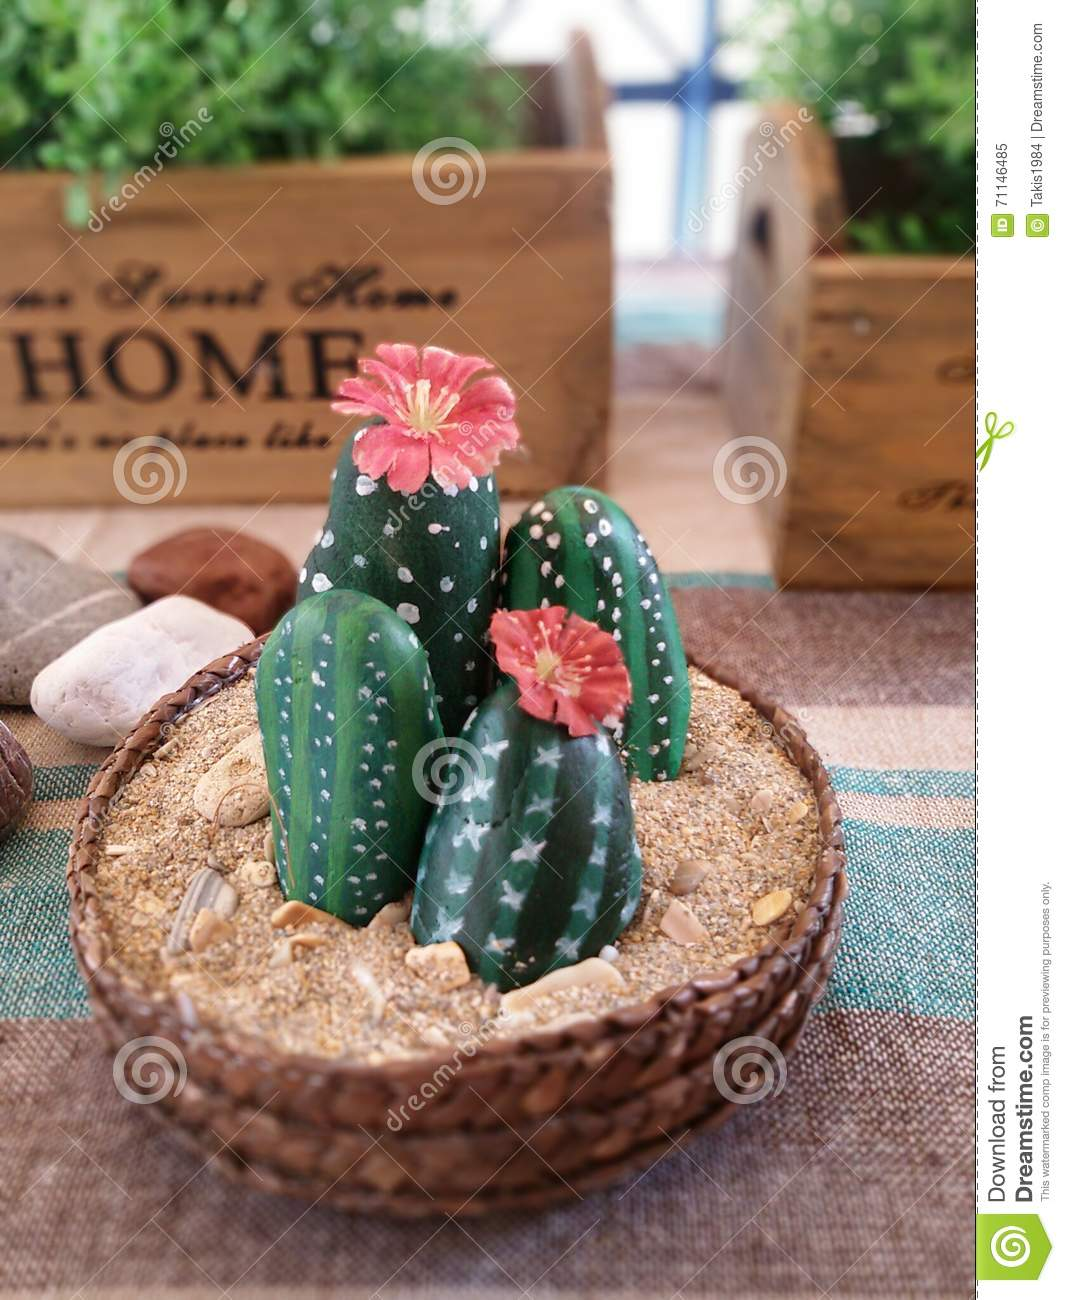 Painted Stones Look Like Cactus Stock Image - Image of stones ...